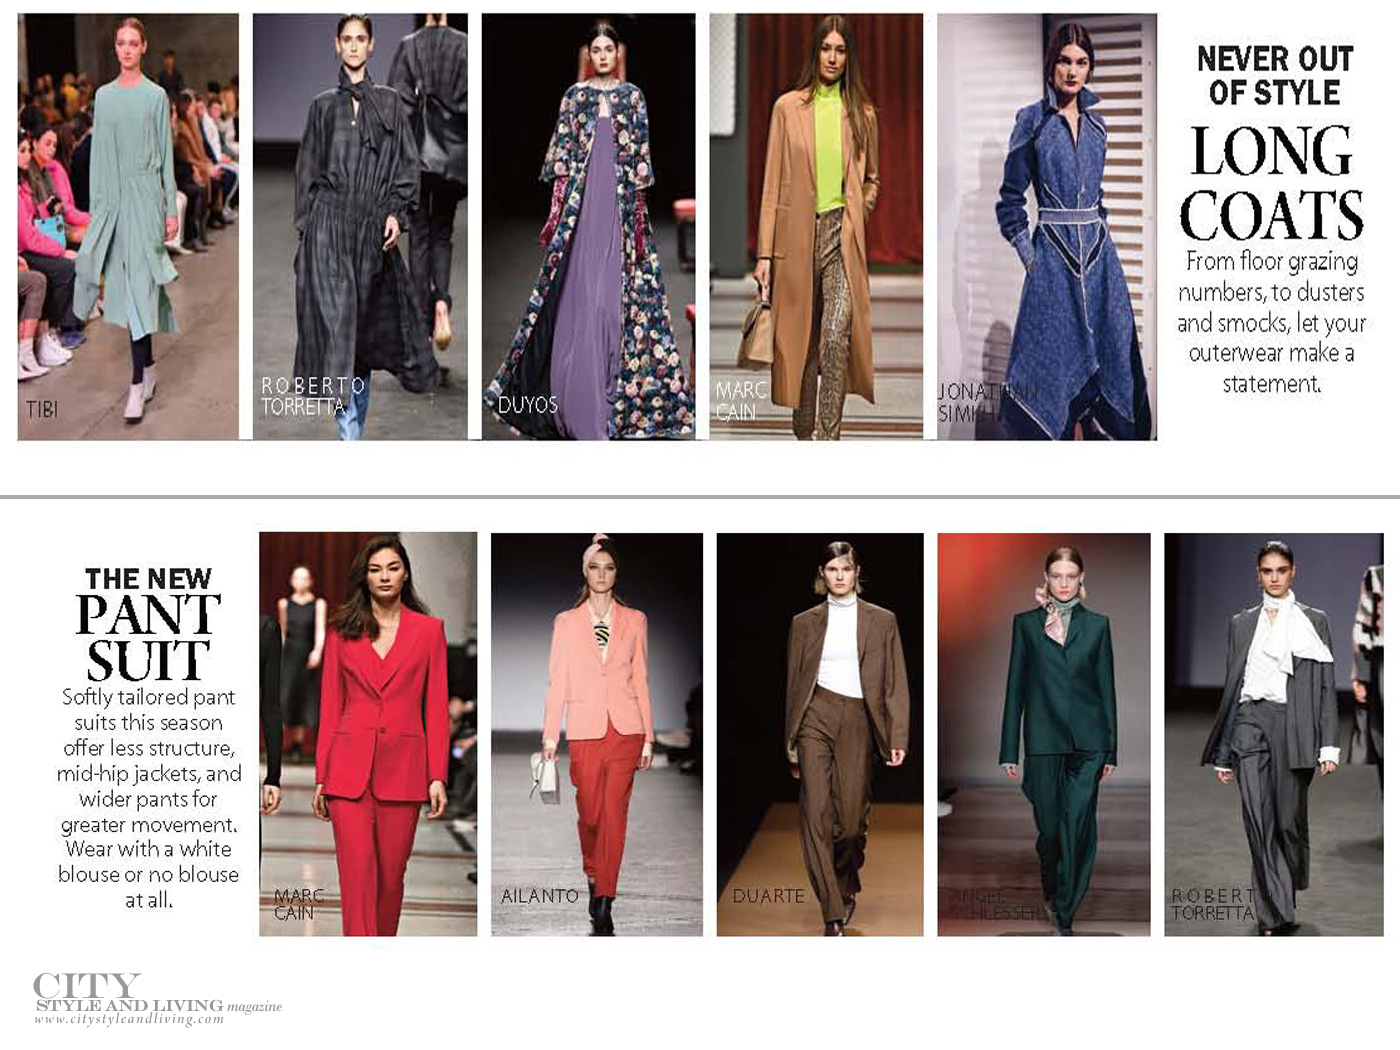 City Style and Living Magazine Fashion Fall 2019 colours and pant suit